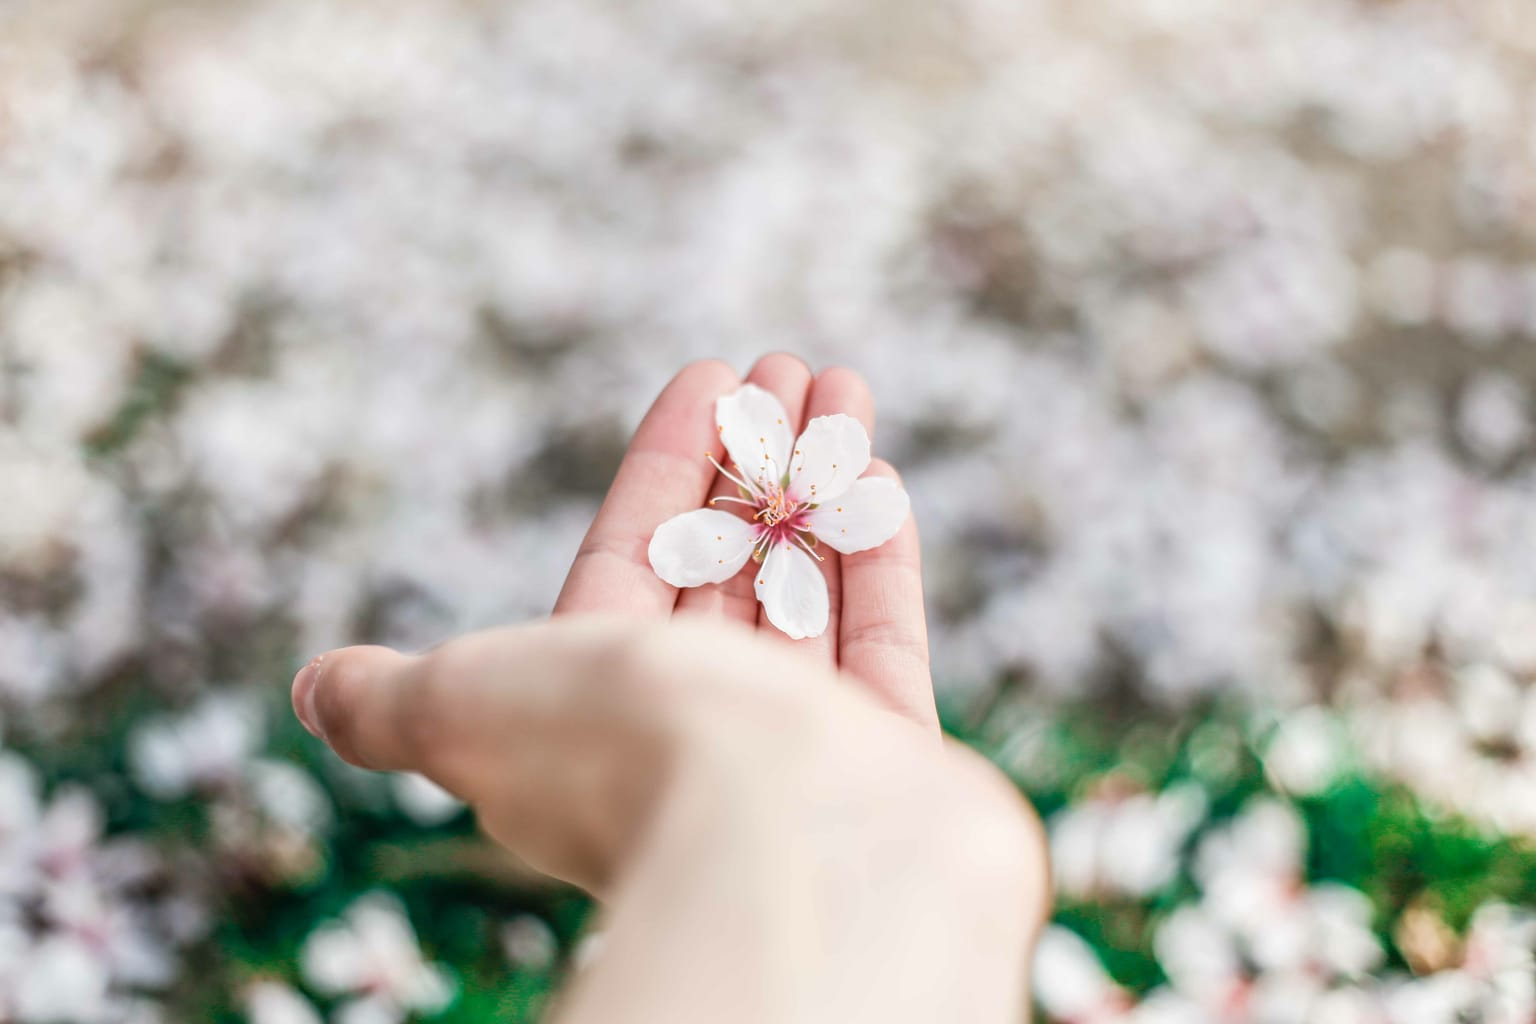 Cherry blossom in hand